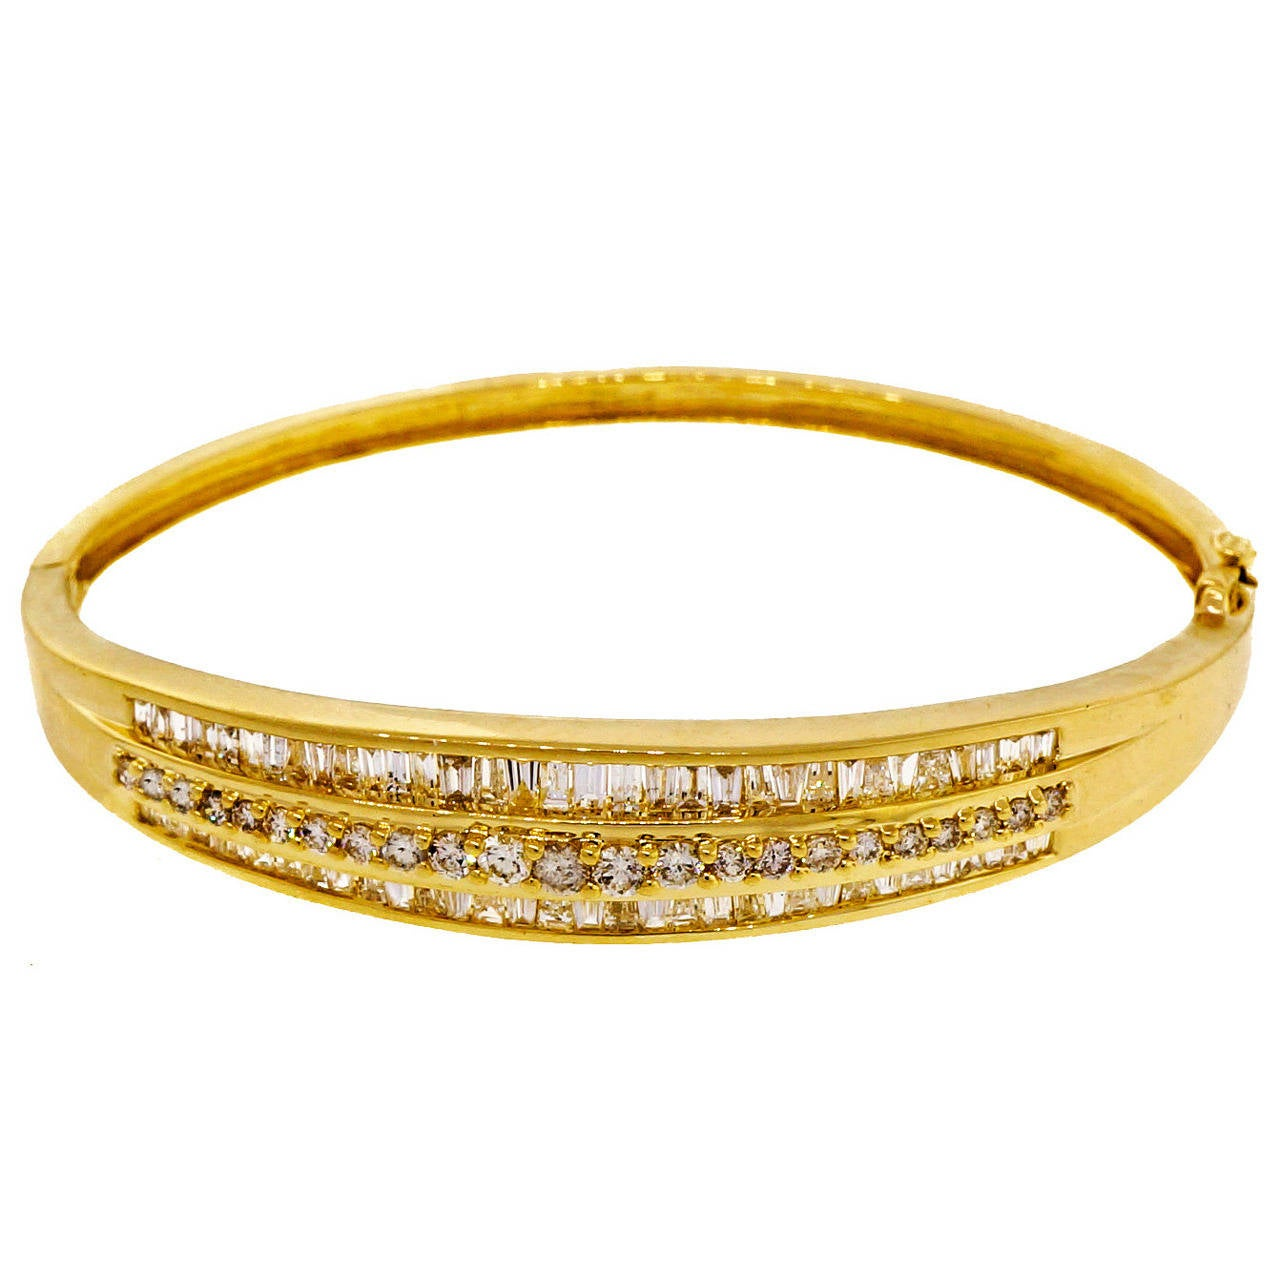 1.66 Carat Baguette Round Diamond Hinged Gold Bangle Bracelet